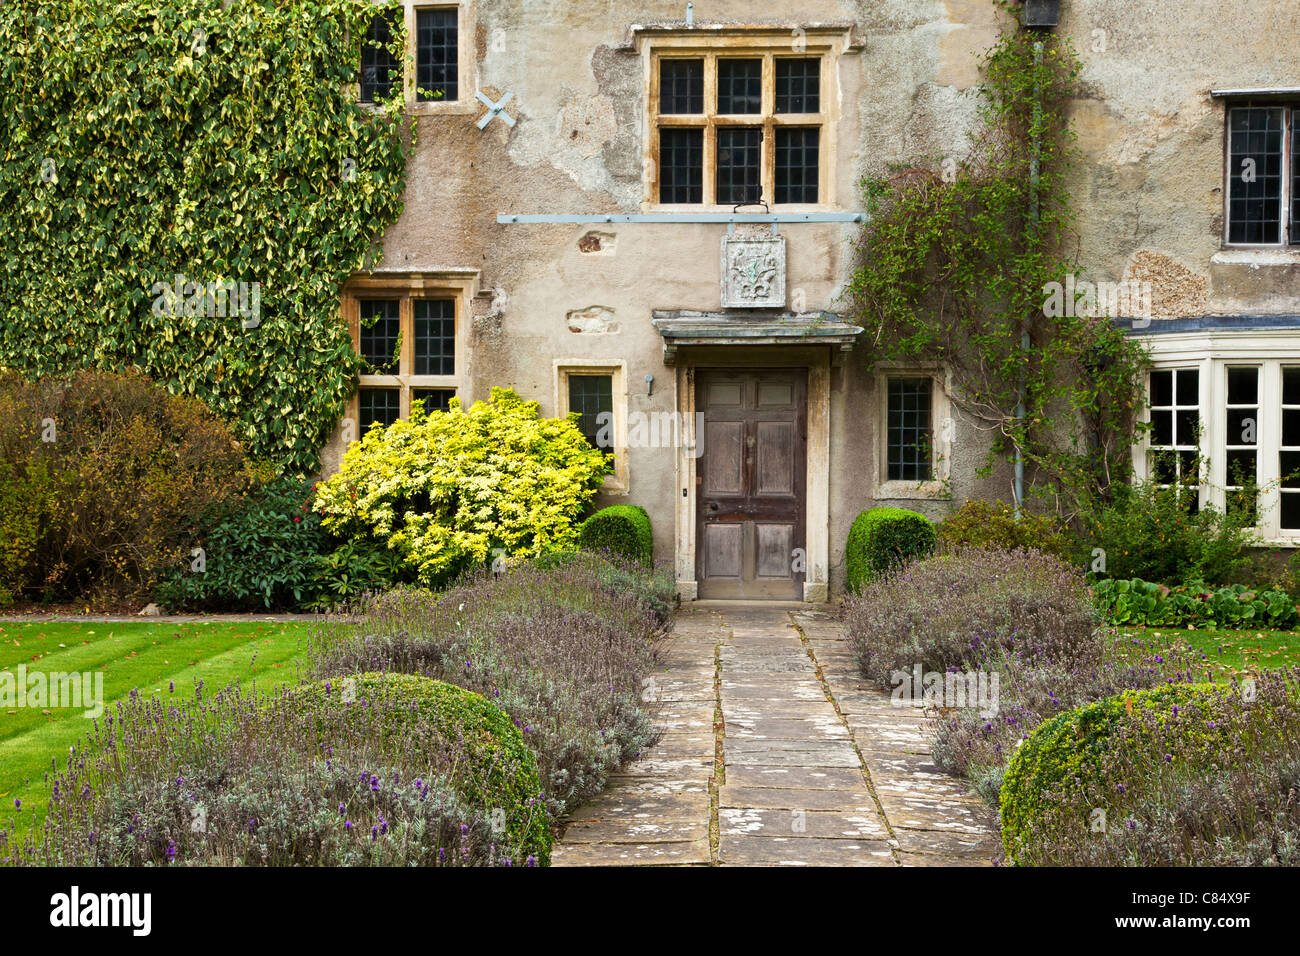 The front door and facade of an early 16th century English manor house at  Avebury in Wiltshire, England, UK